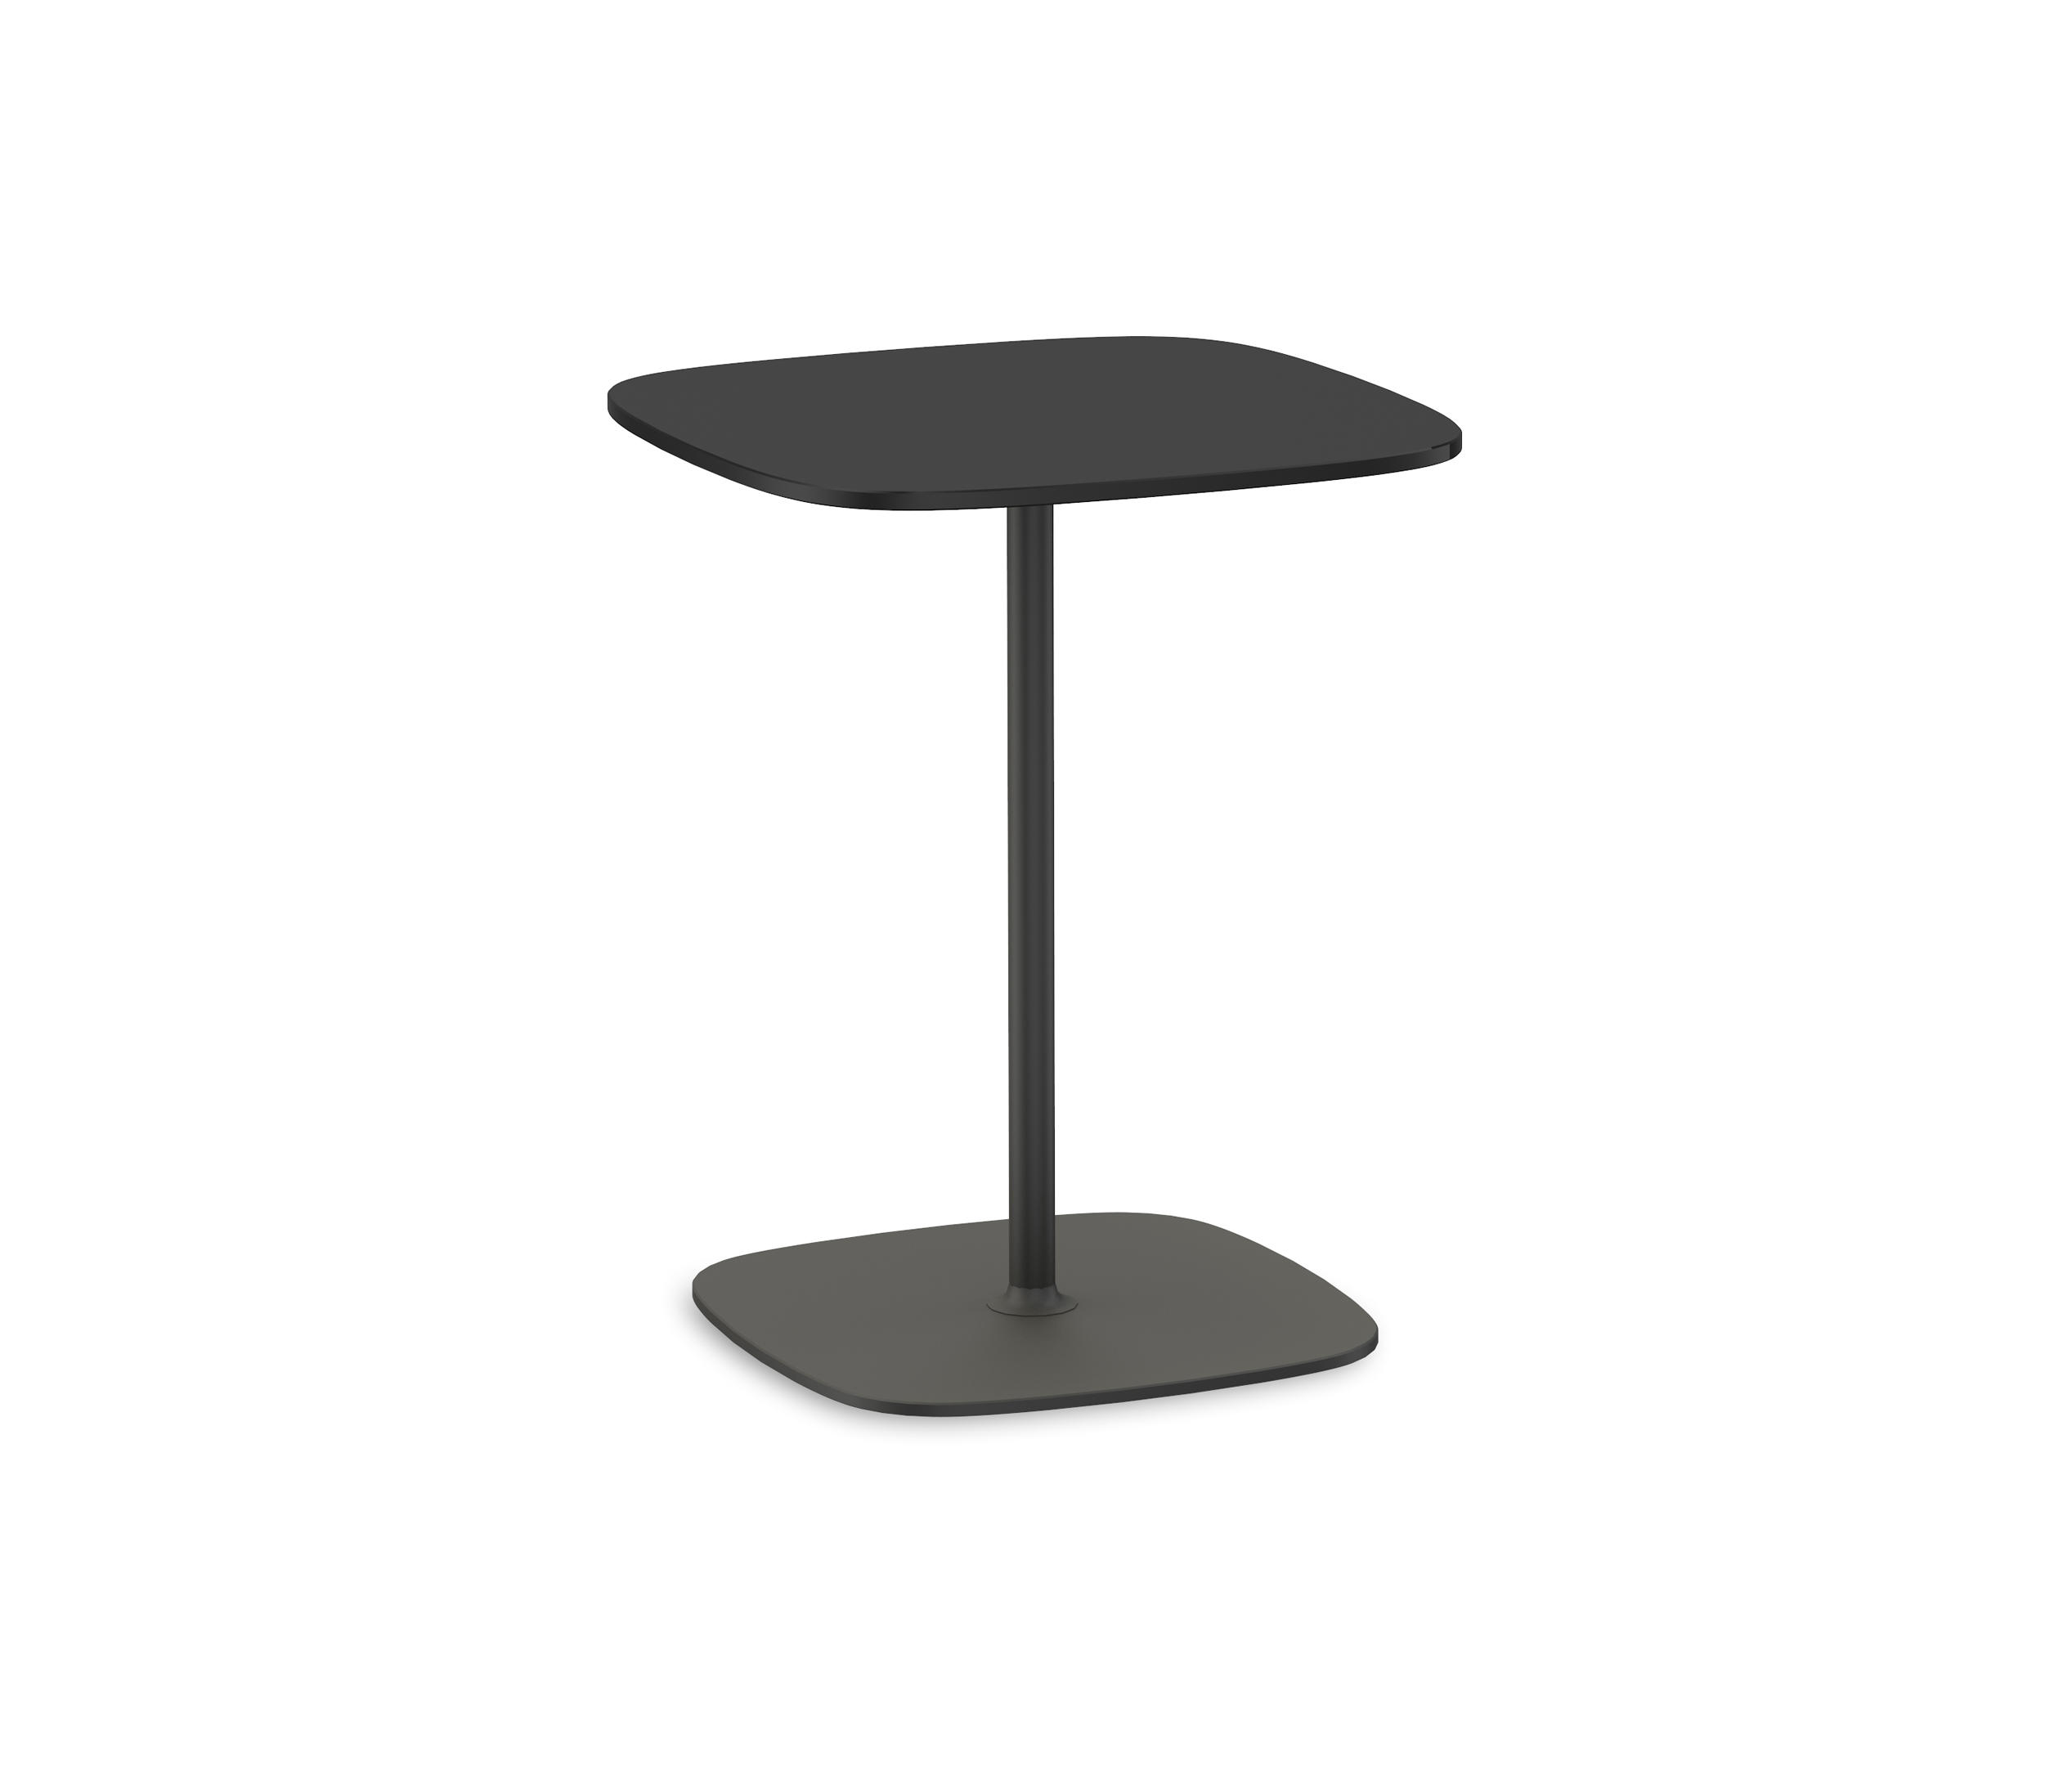 lox sidetable side tables from walter knoll architonic. Black Bedroom Furniture Sets. Home Design Ideas